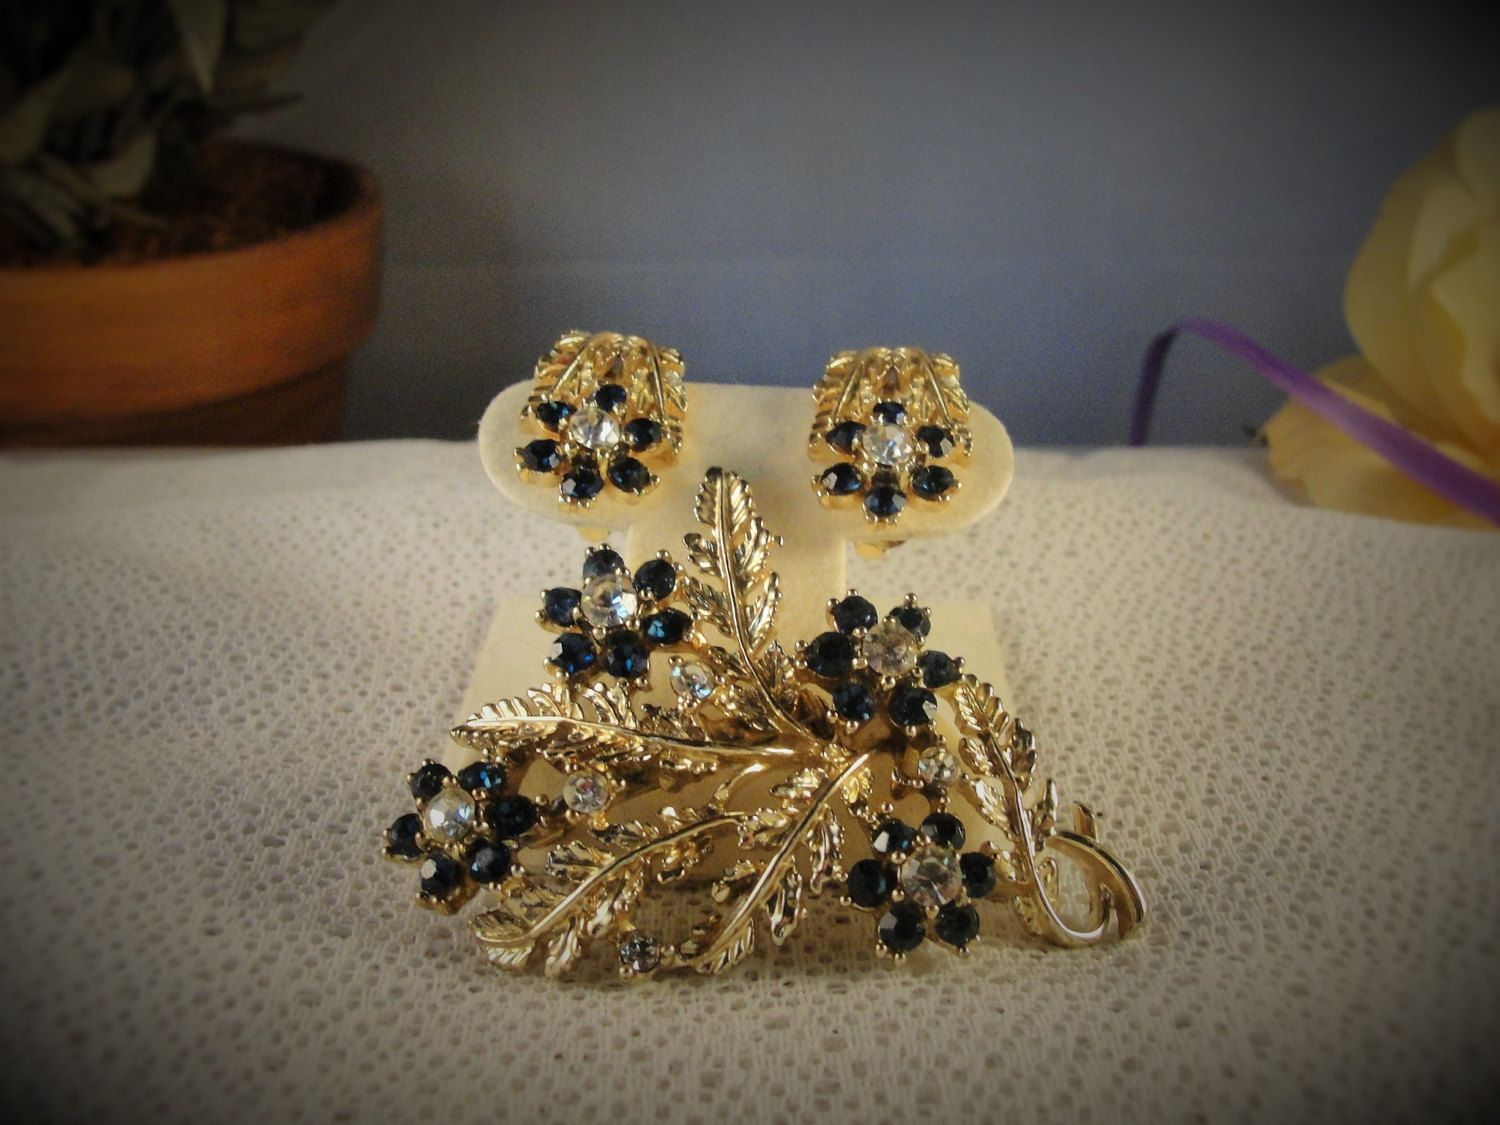 152094 Coro Katz Floral Brooch 48 and Earrings - Blue Sapphires Rhinestones and Clear Rhinestones on Leafy Gold tone by CarolsVintageJewelry on Etsy